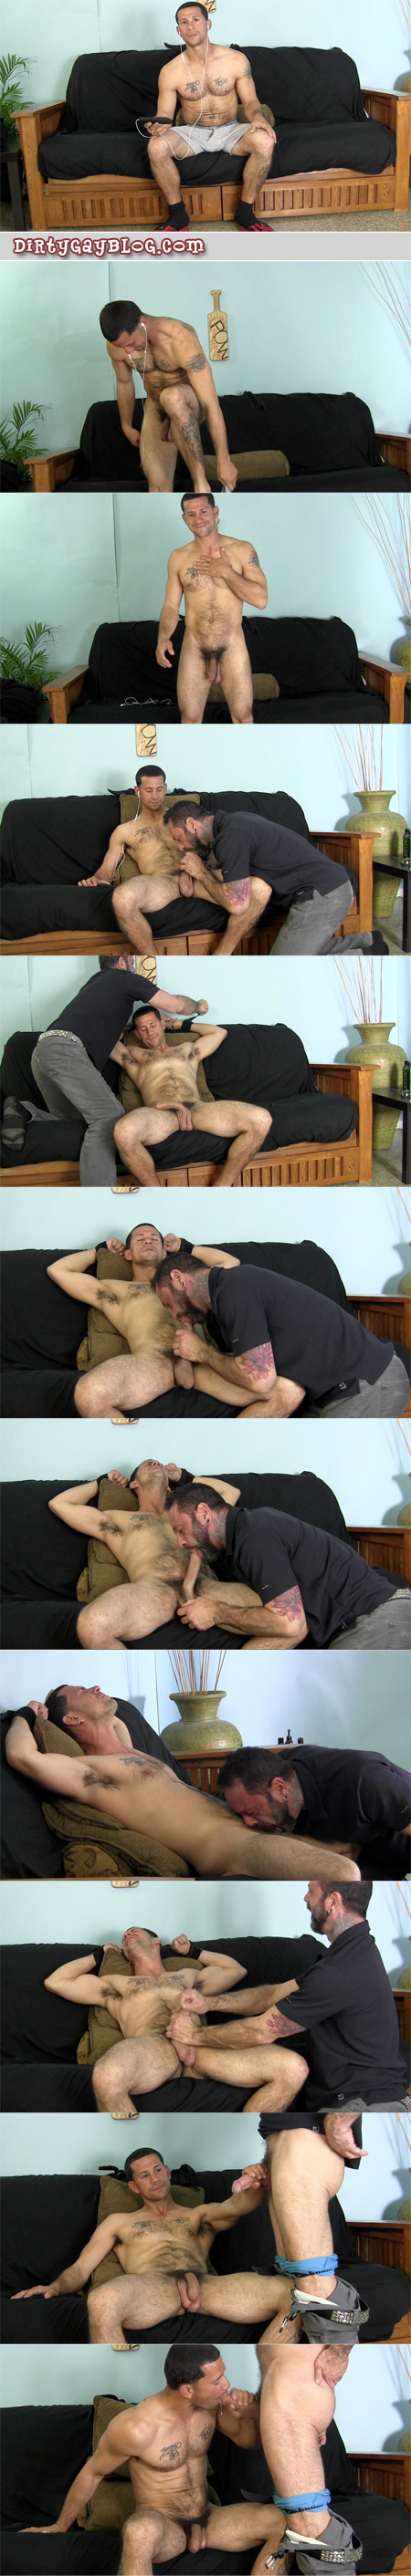 Hung uncut straight guy bound and milked before sucking dick for the first time.